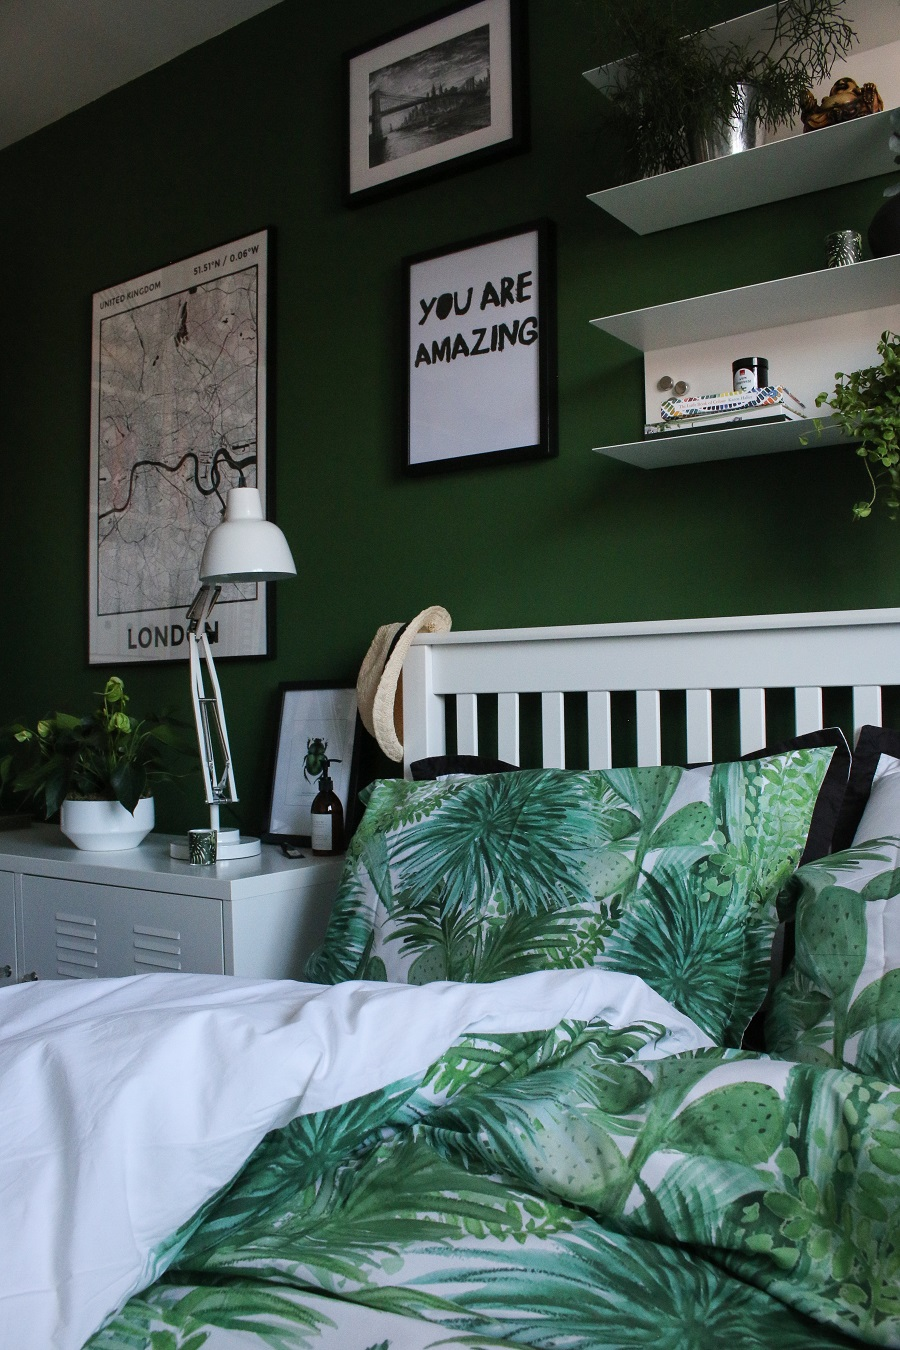 My Sleep Sanctuary and How to Create Your Own